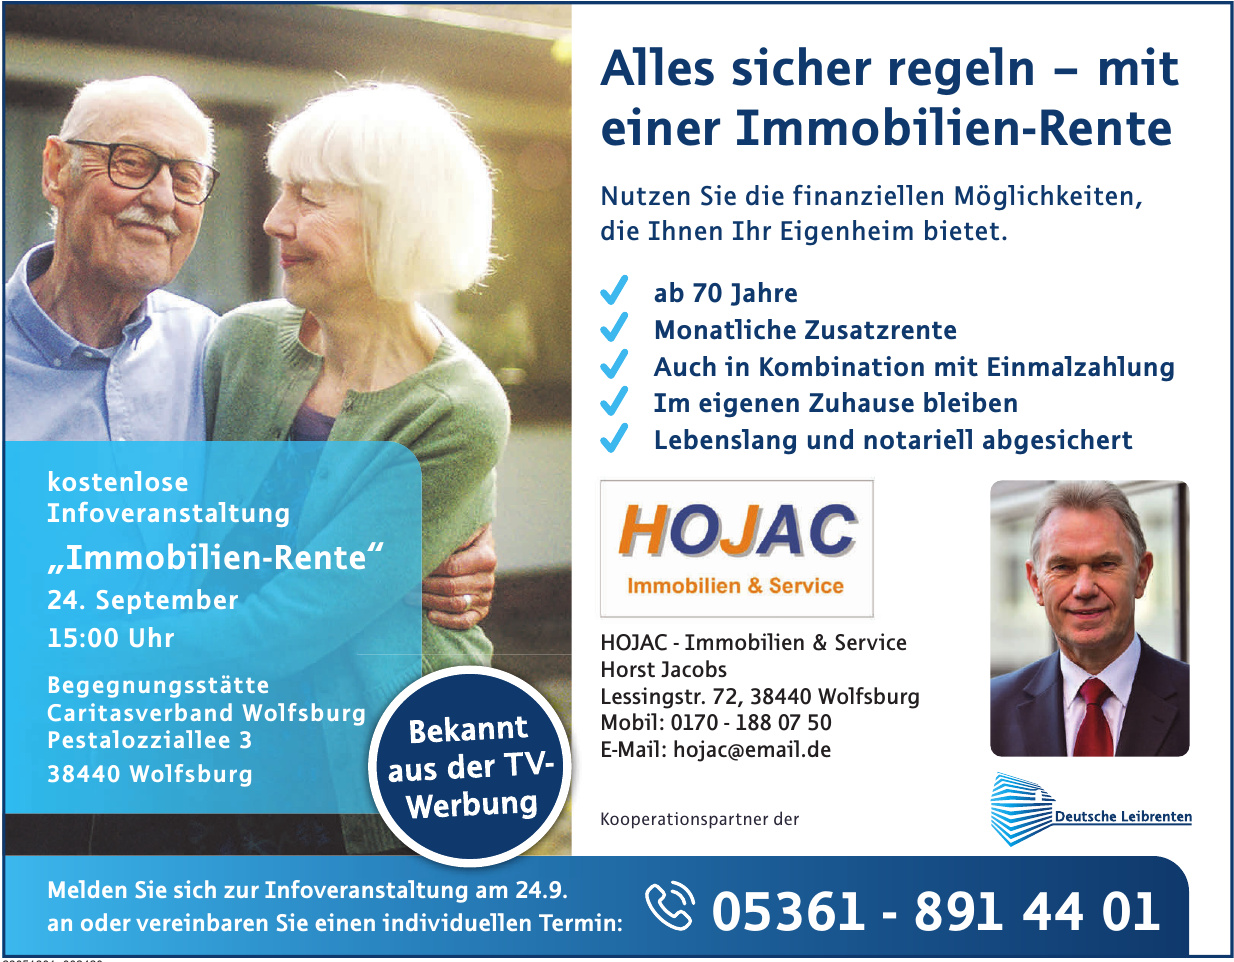 HOJAC - Immobilien & Service